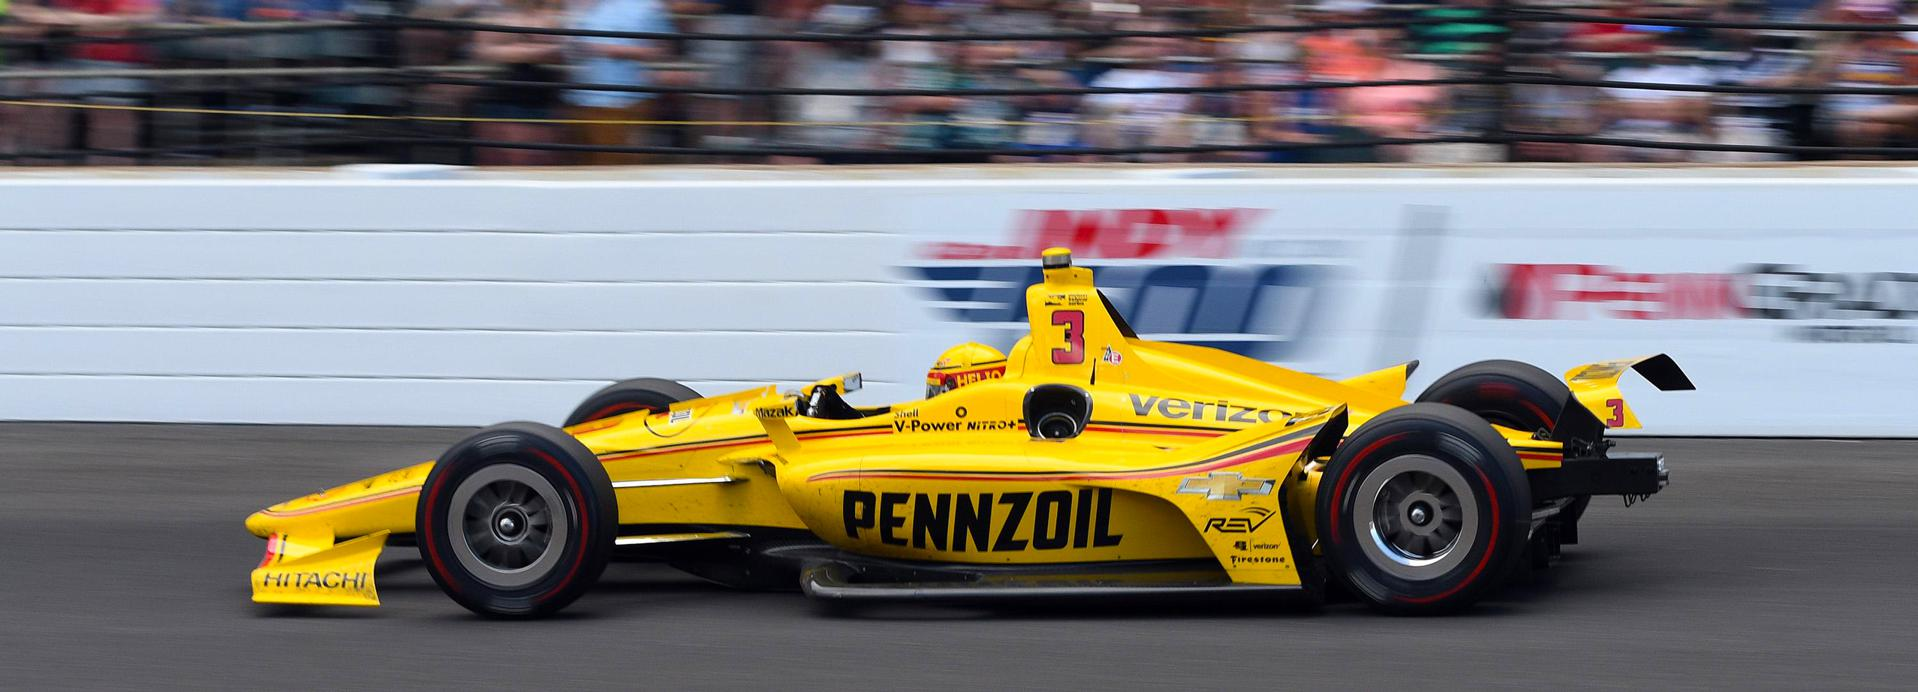 Helio Castroneves Indy 500